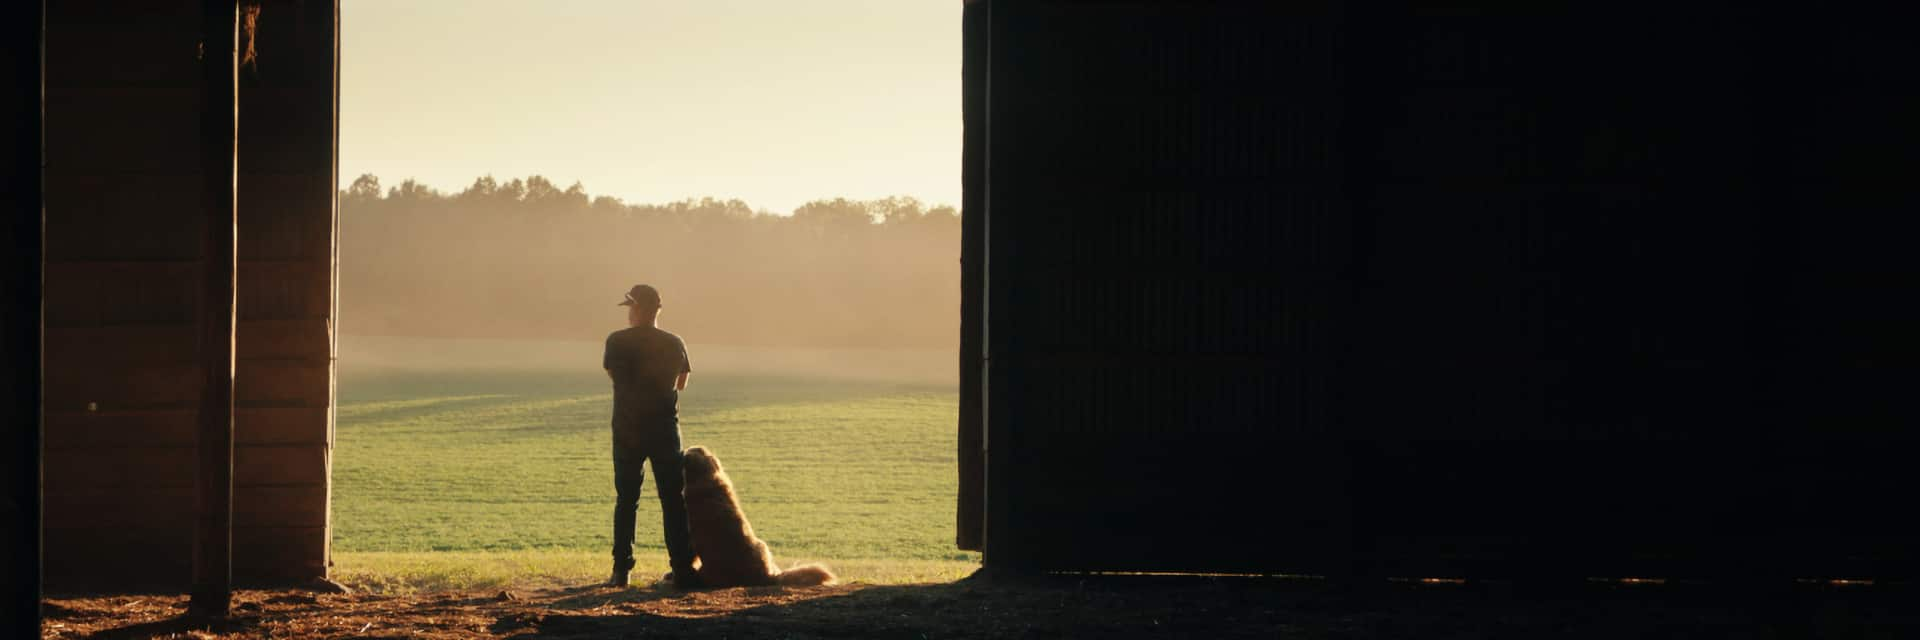 A man with his dog standing at the entrance of a barn, looking out at the vast open field at sunrise.